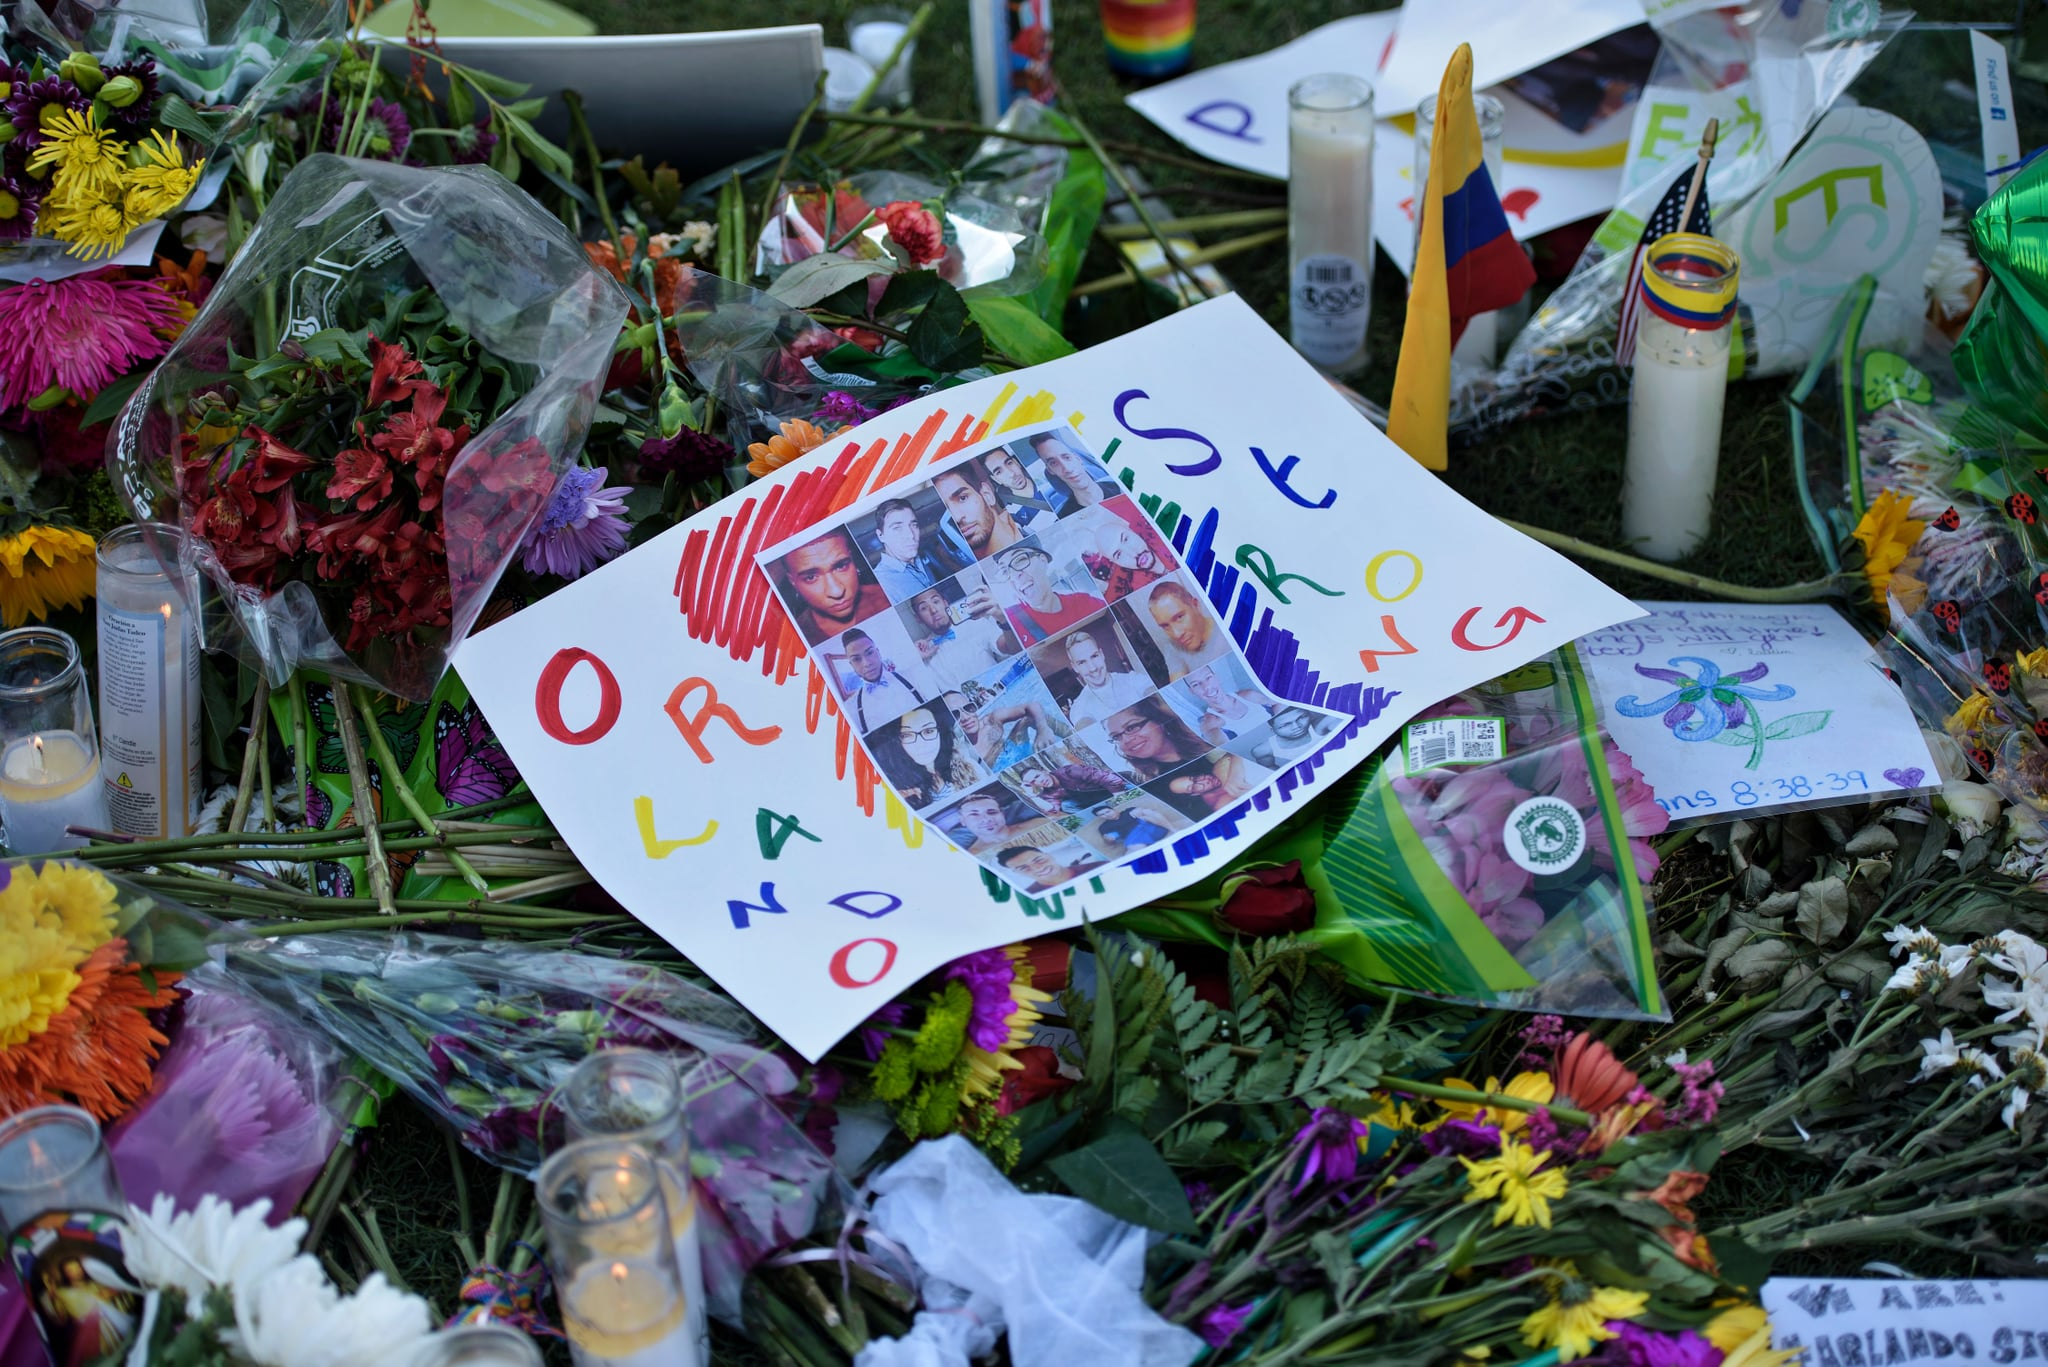 Photos and flowers are seen at a memorial at the Dr. Phillips Center for the Performing Arts to honor the Pulse nightclub mass shooting victims June 14, 2016 in Orlando, Florida.The gunman who launched the worst terror attack on US soil since 9/11 at a gay nightclub in Orlando was radicalized by Islamist propaganda, officials said, amid reports he was a club regular. Lone gunman Omar Mateen killed 49 and wounded another 53 before he was killed when police stormed the Pulse, one of Orlando's most prominent gay venues, early Sunday. / AFP / Brendan Smialowski        (Photo credit should read BRENDAN SMIALOWSKI/AFP via Getty Images)